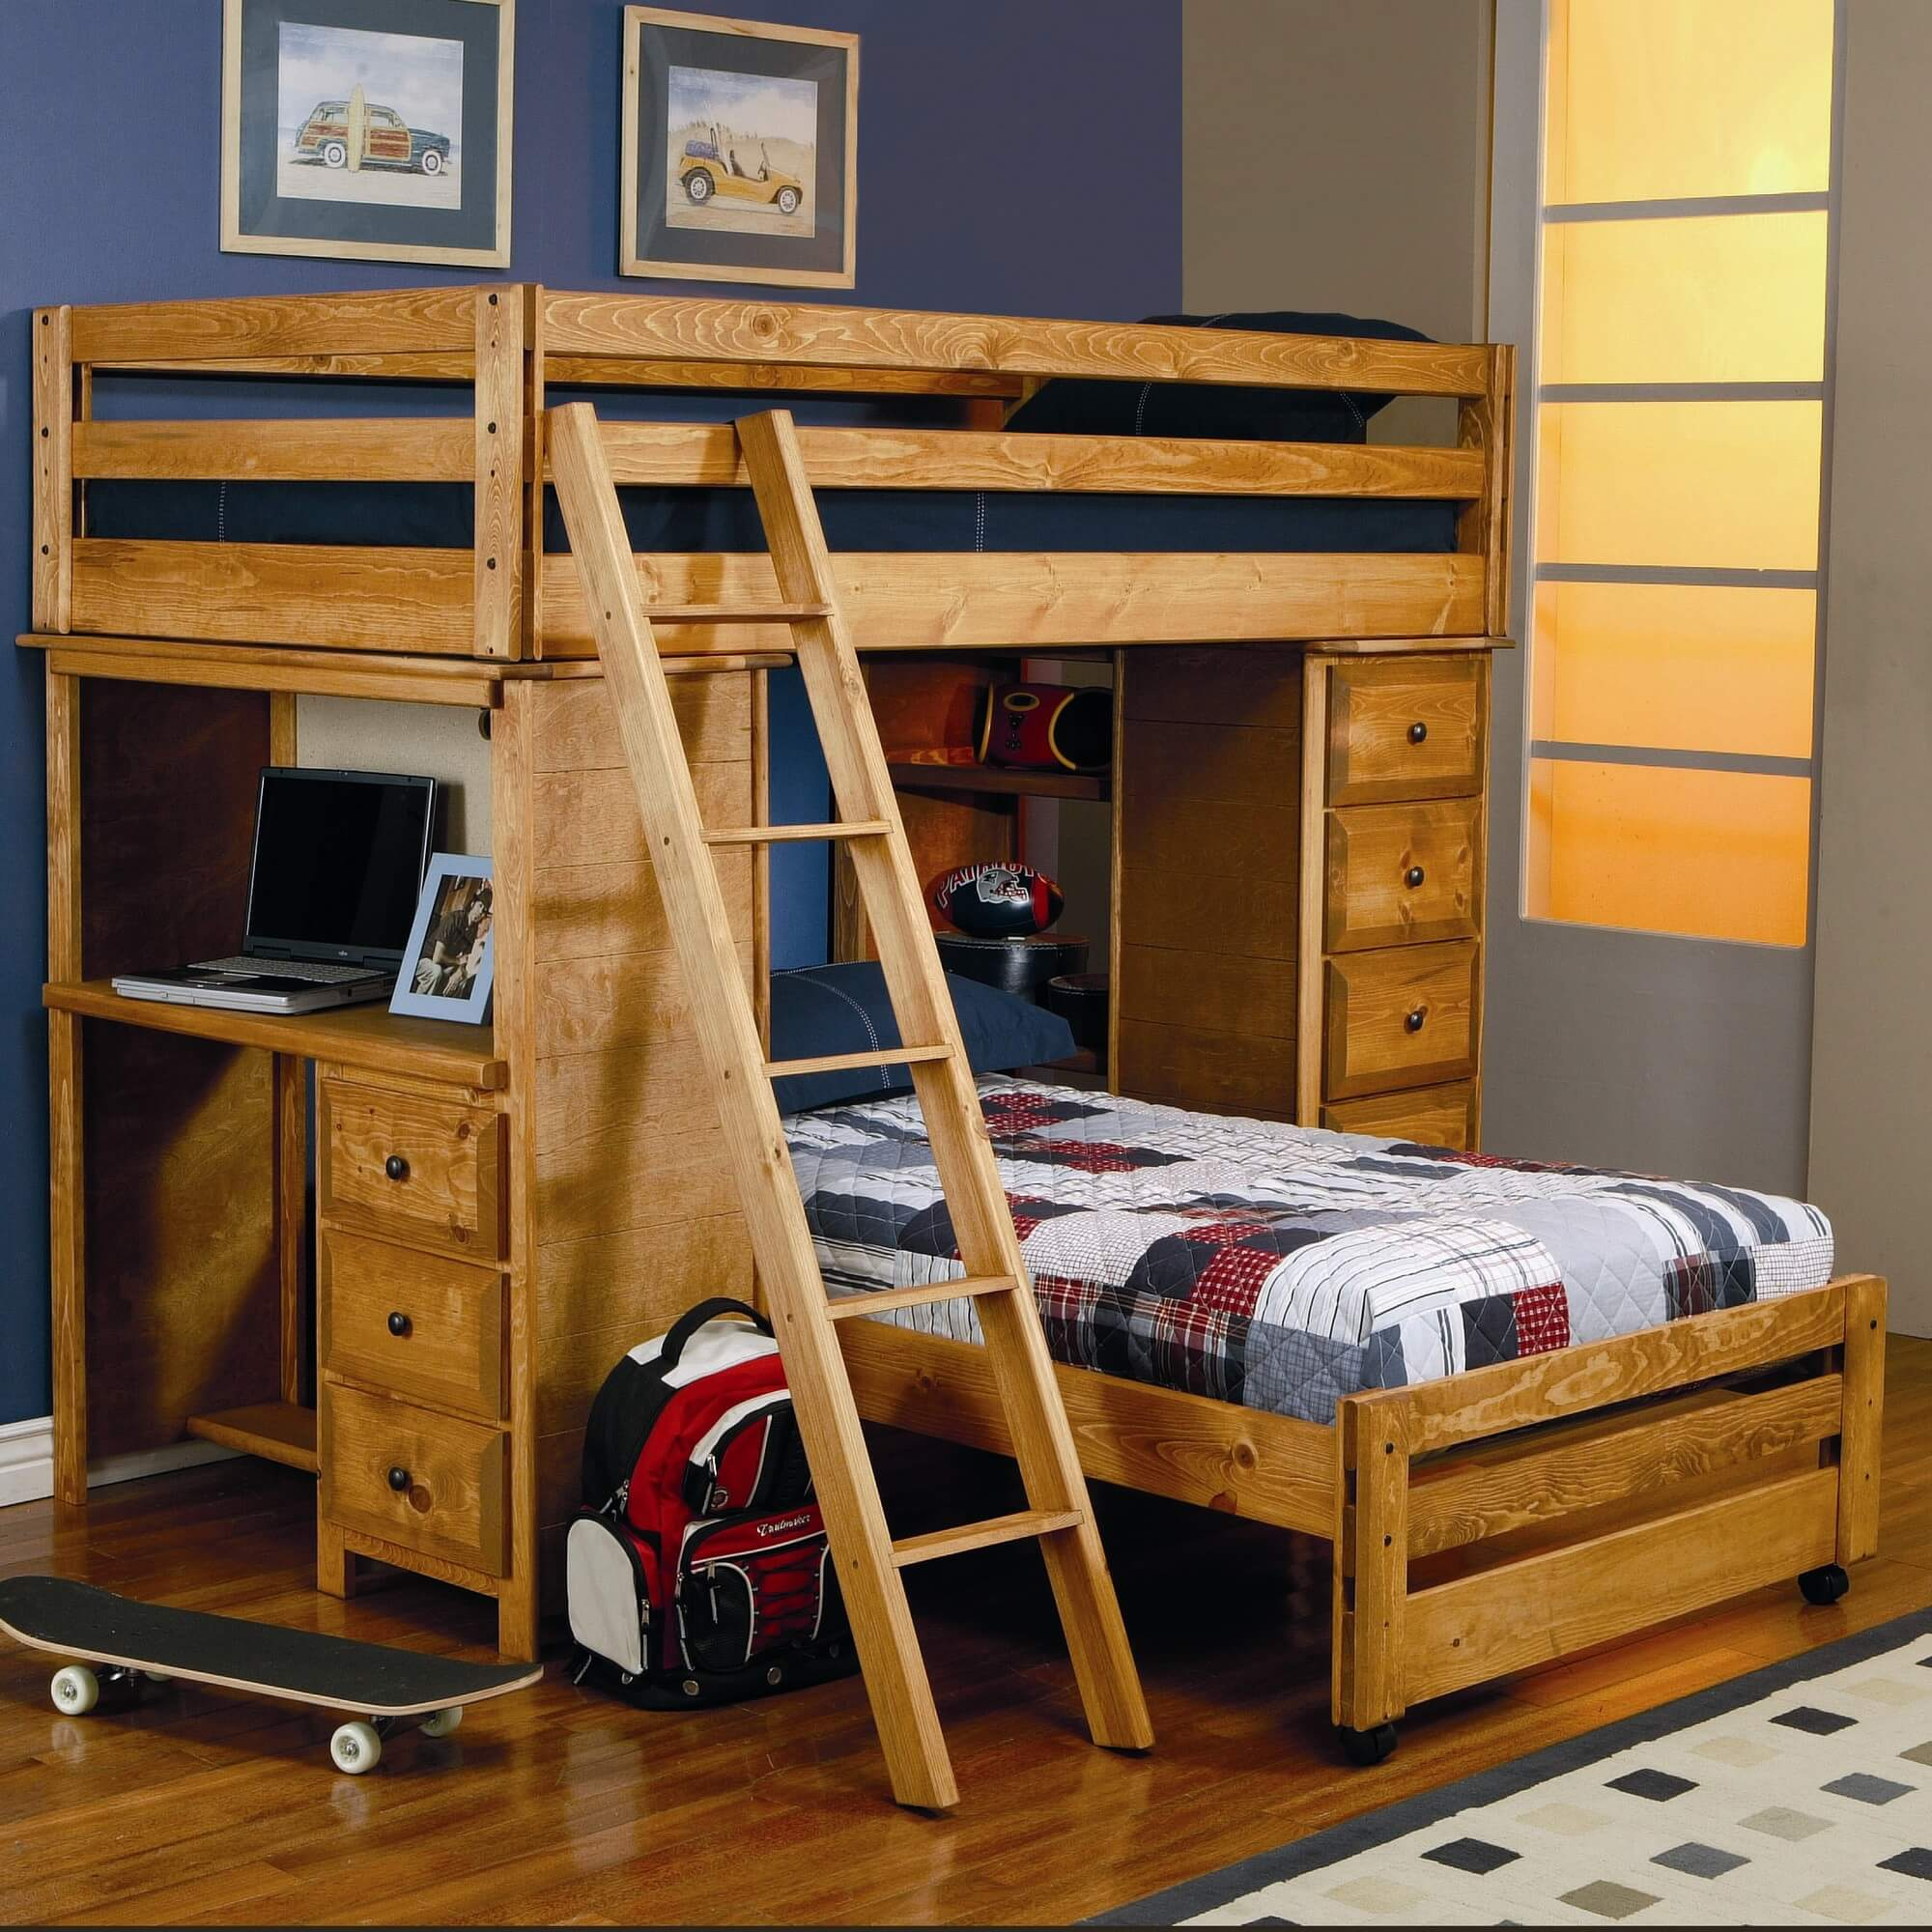 Double Bunks For Sale 21 Top Wooden L Shaped Bunk Beds With Space Saving Features